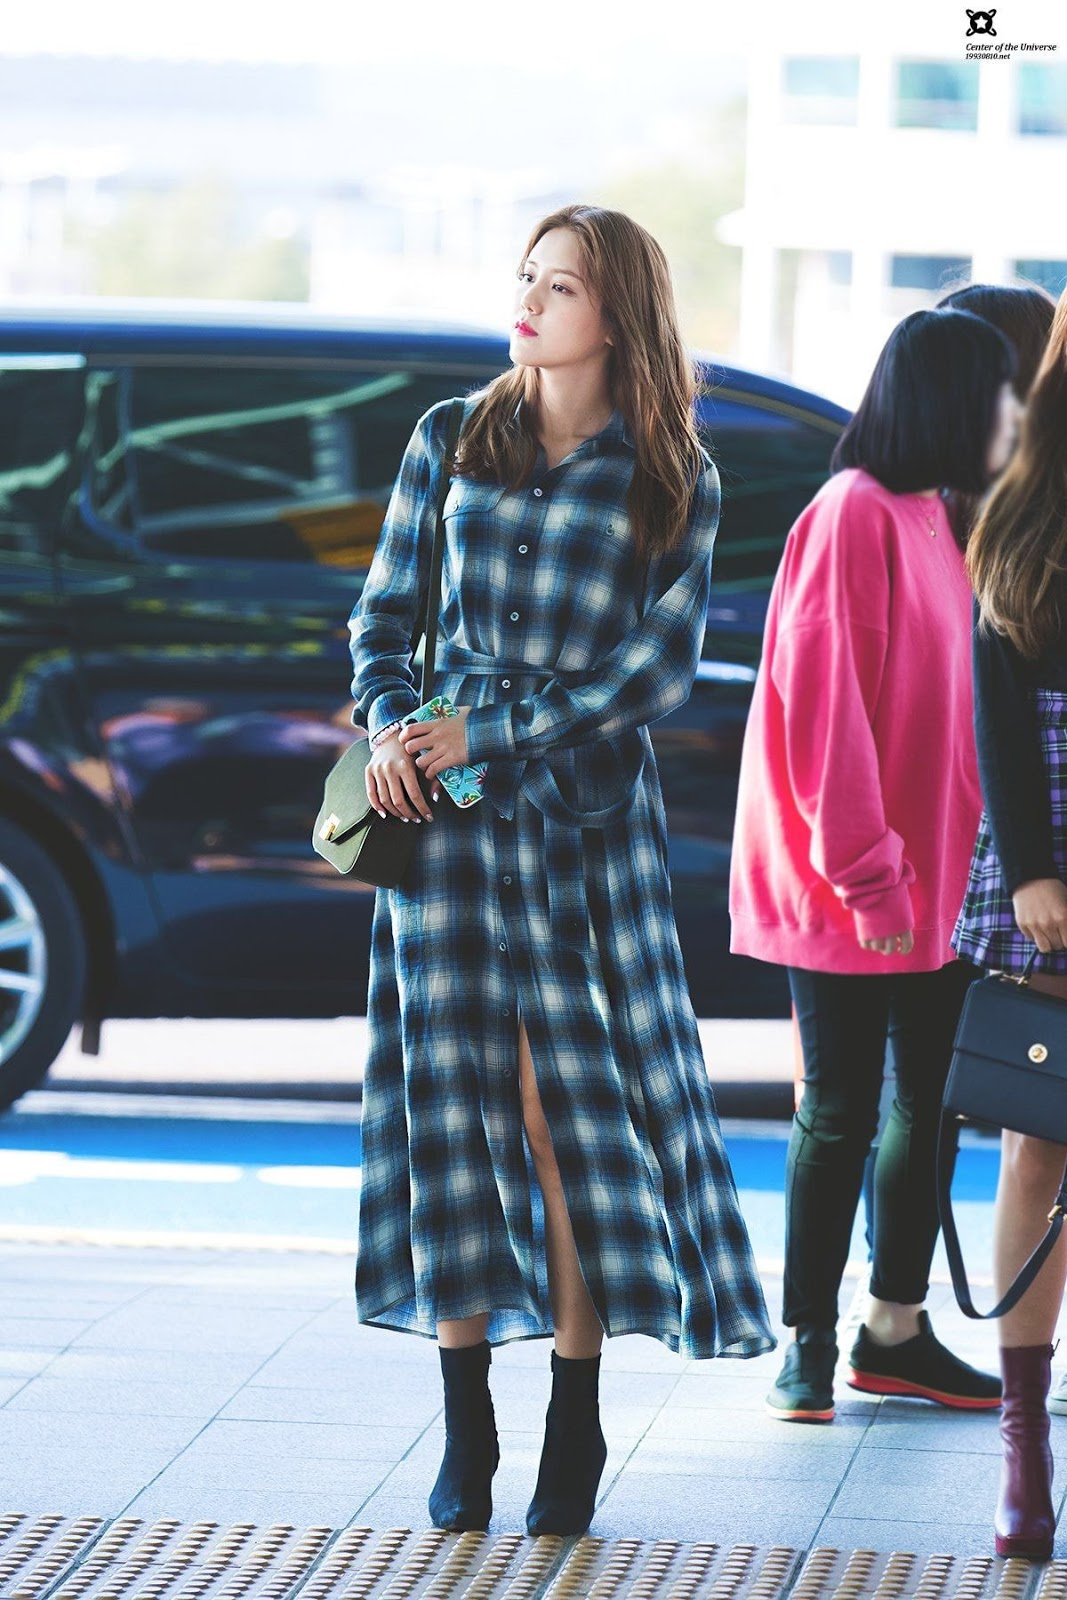 tallest - hyejung